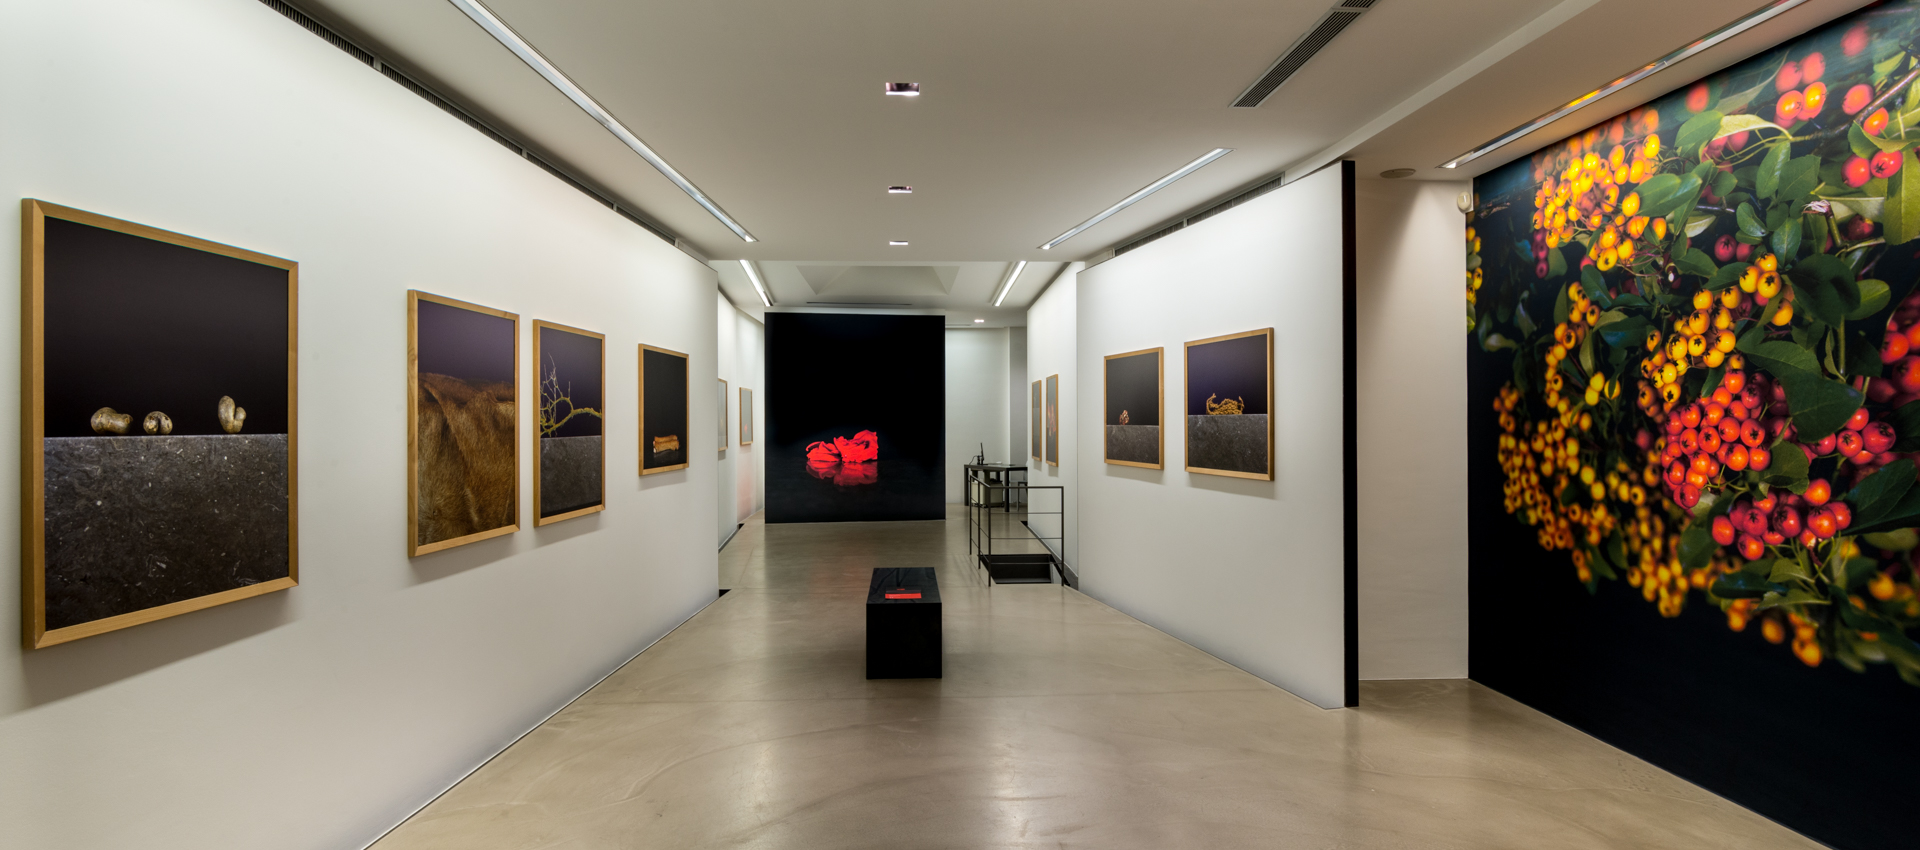 Antonella Cattani galleryview